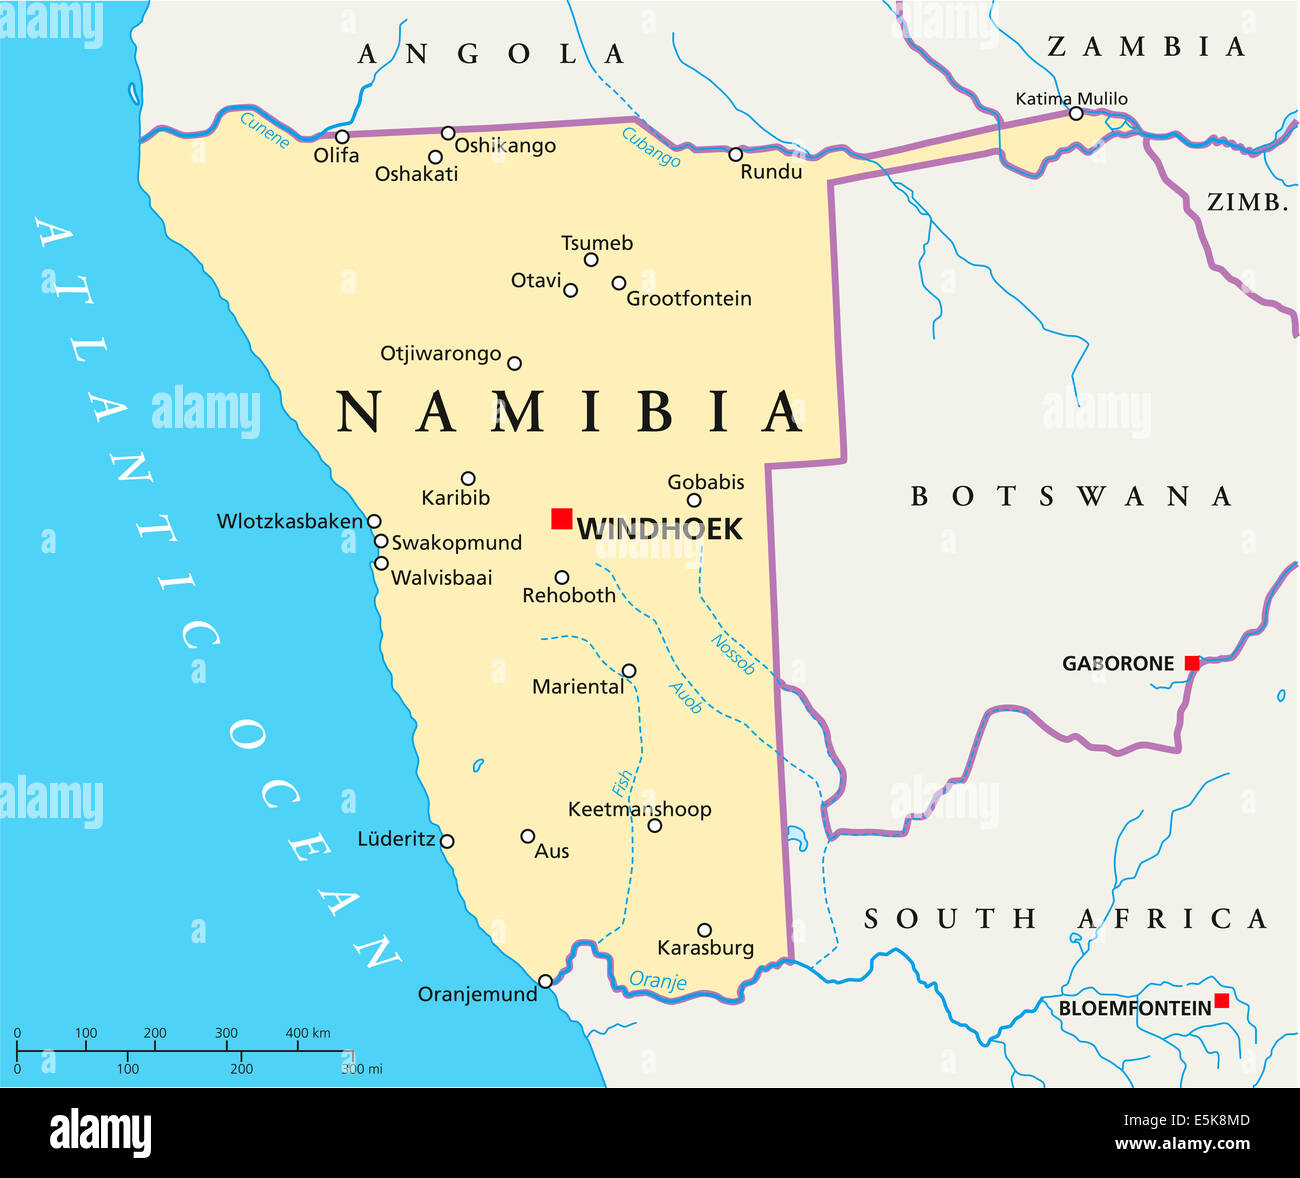 Namibia Political Map with capital Windhoek national borders and